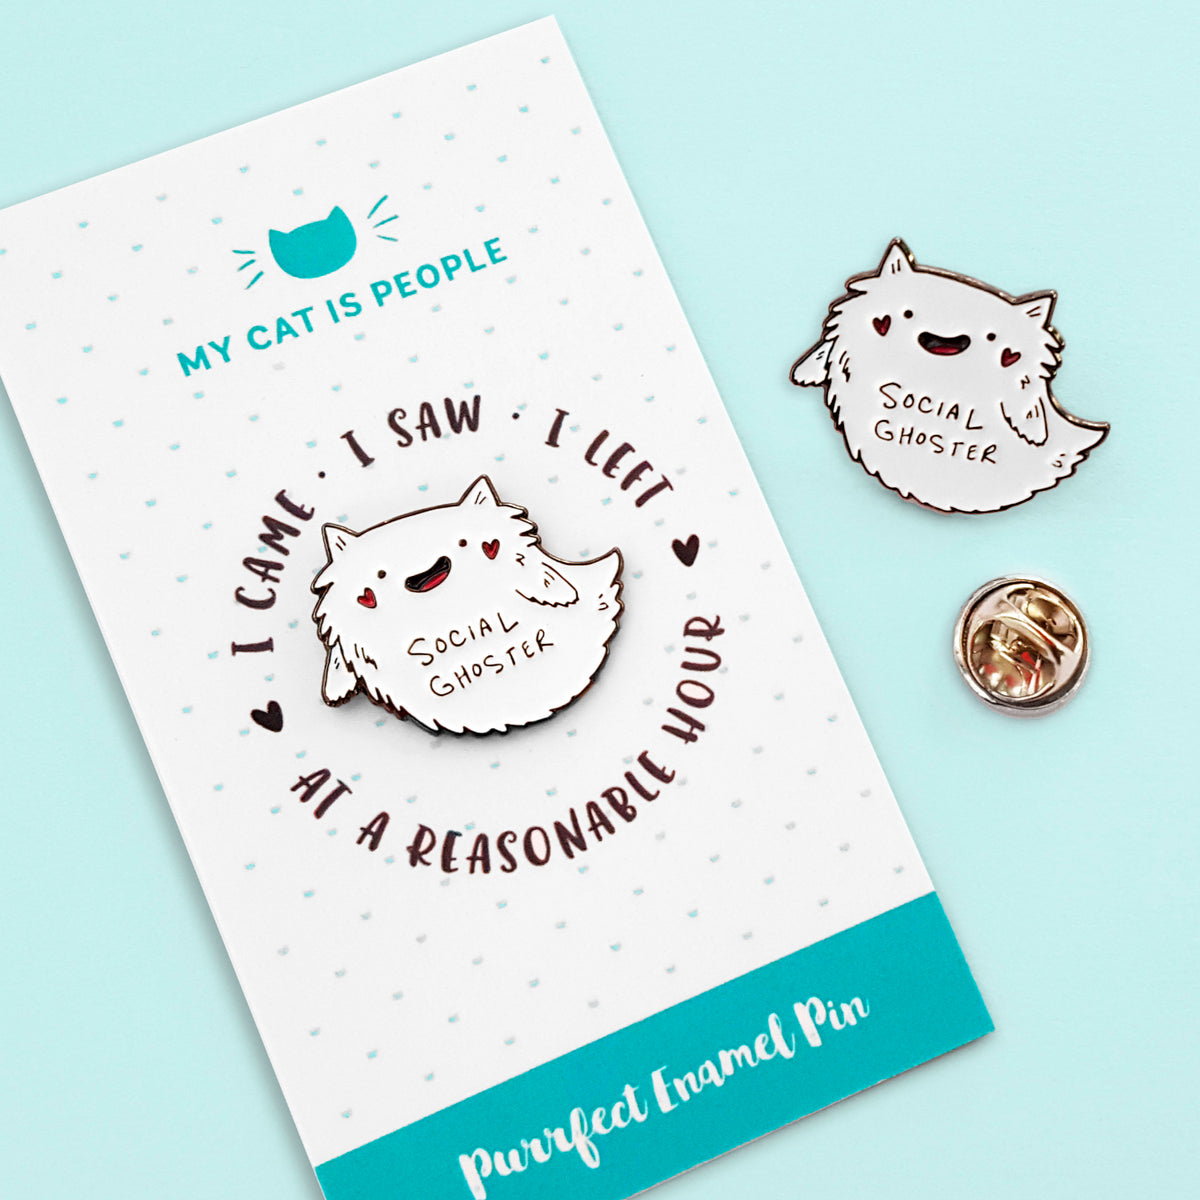 Social Ghoster ~ Enamel Pin